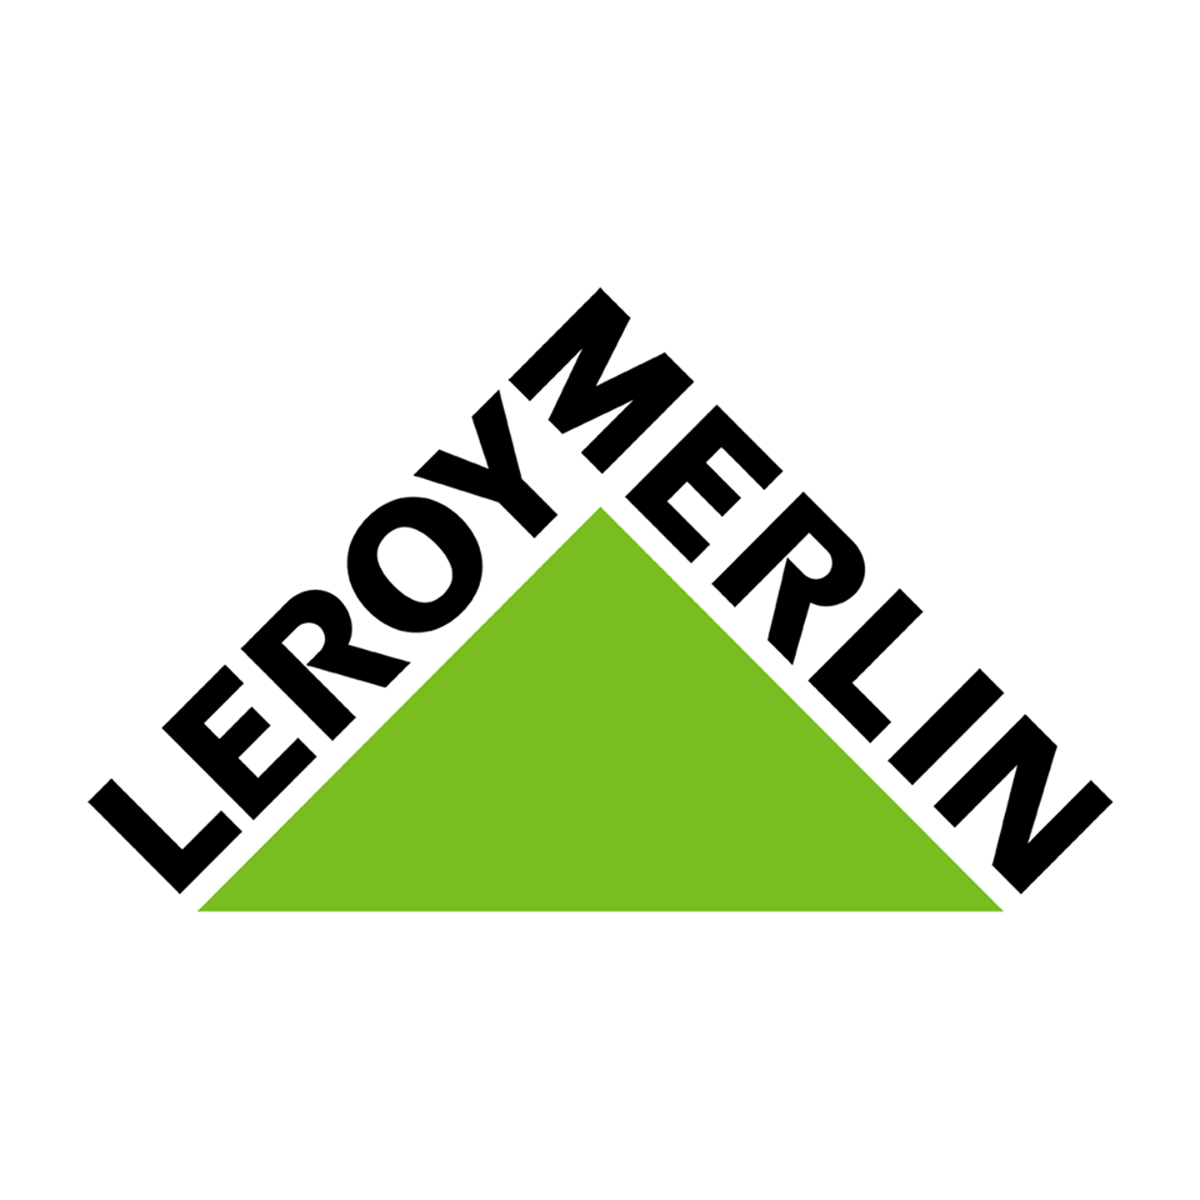 Leroy Merlin αναζητά Store Logistic Specialist Leader